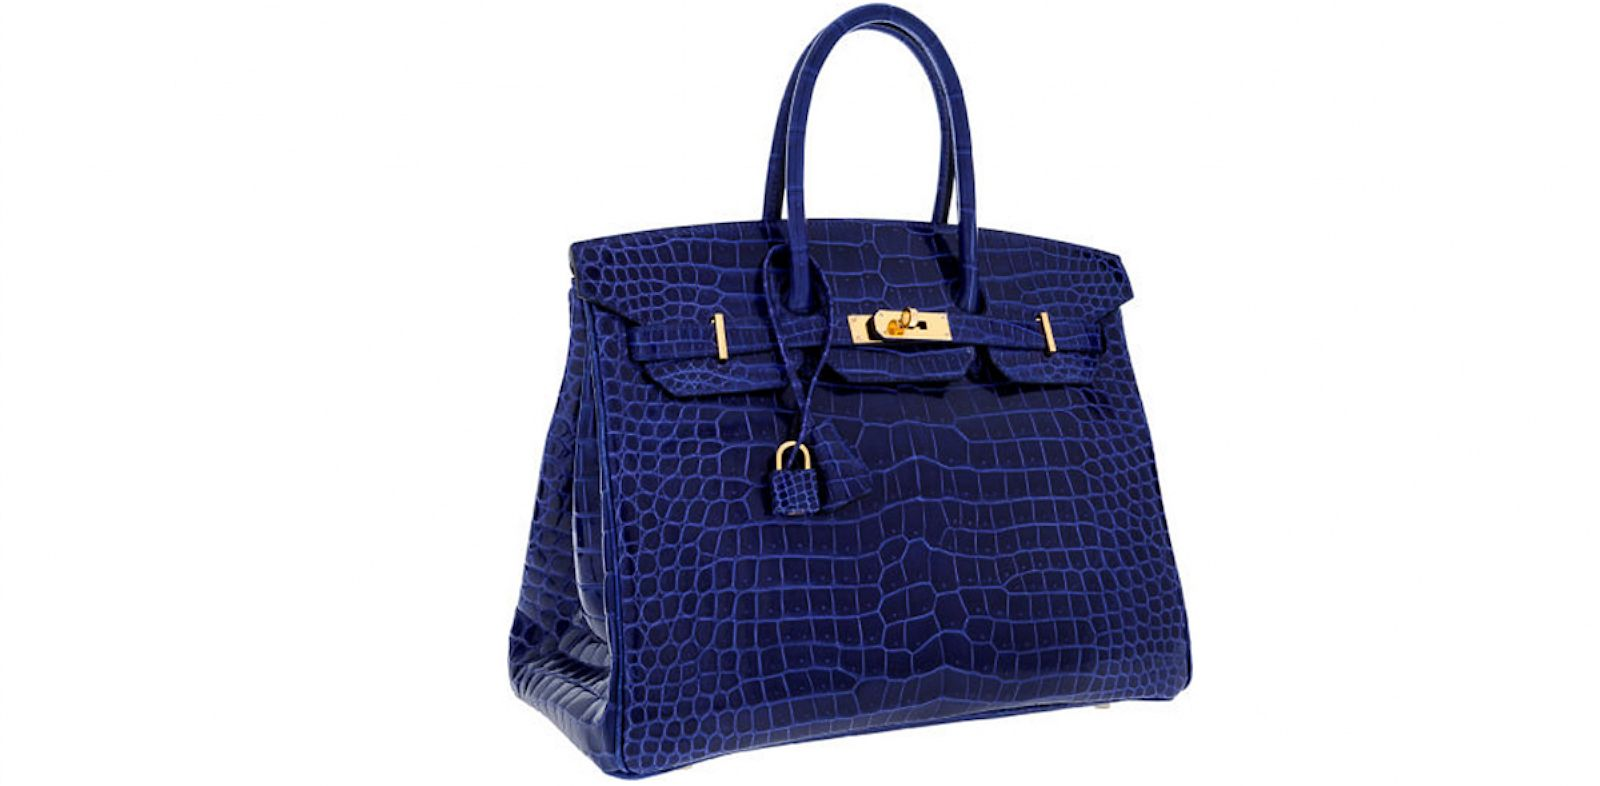 hermes handbag for women